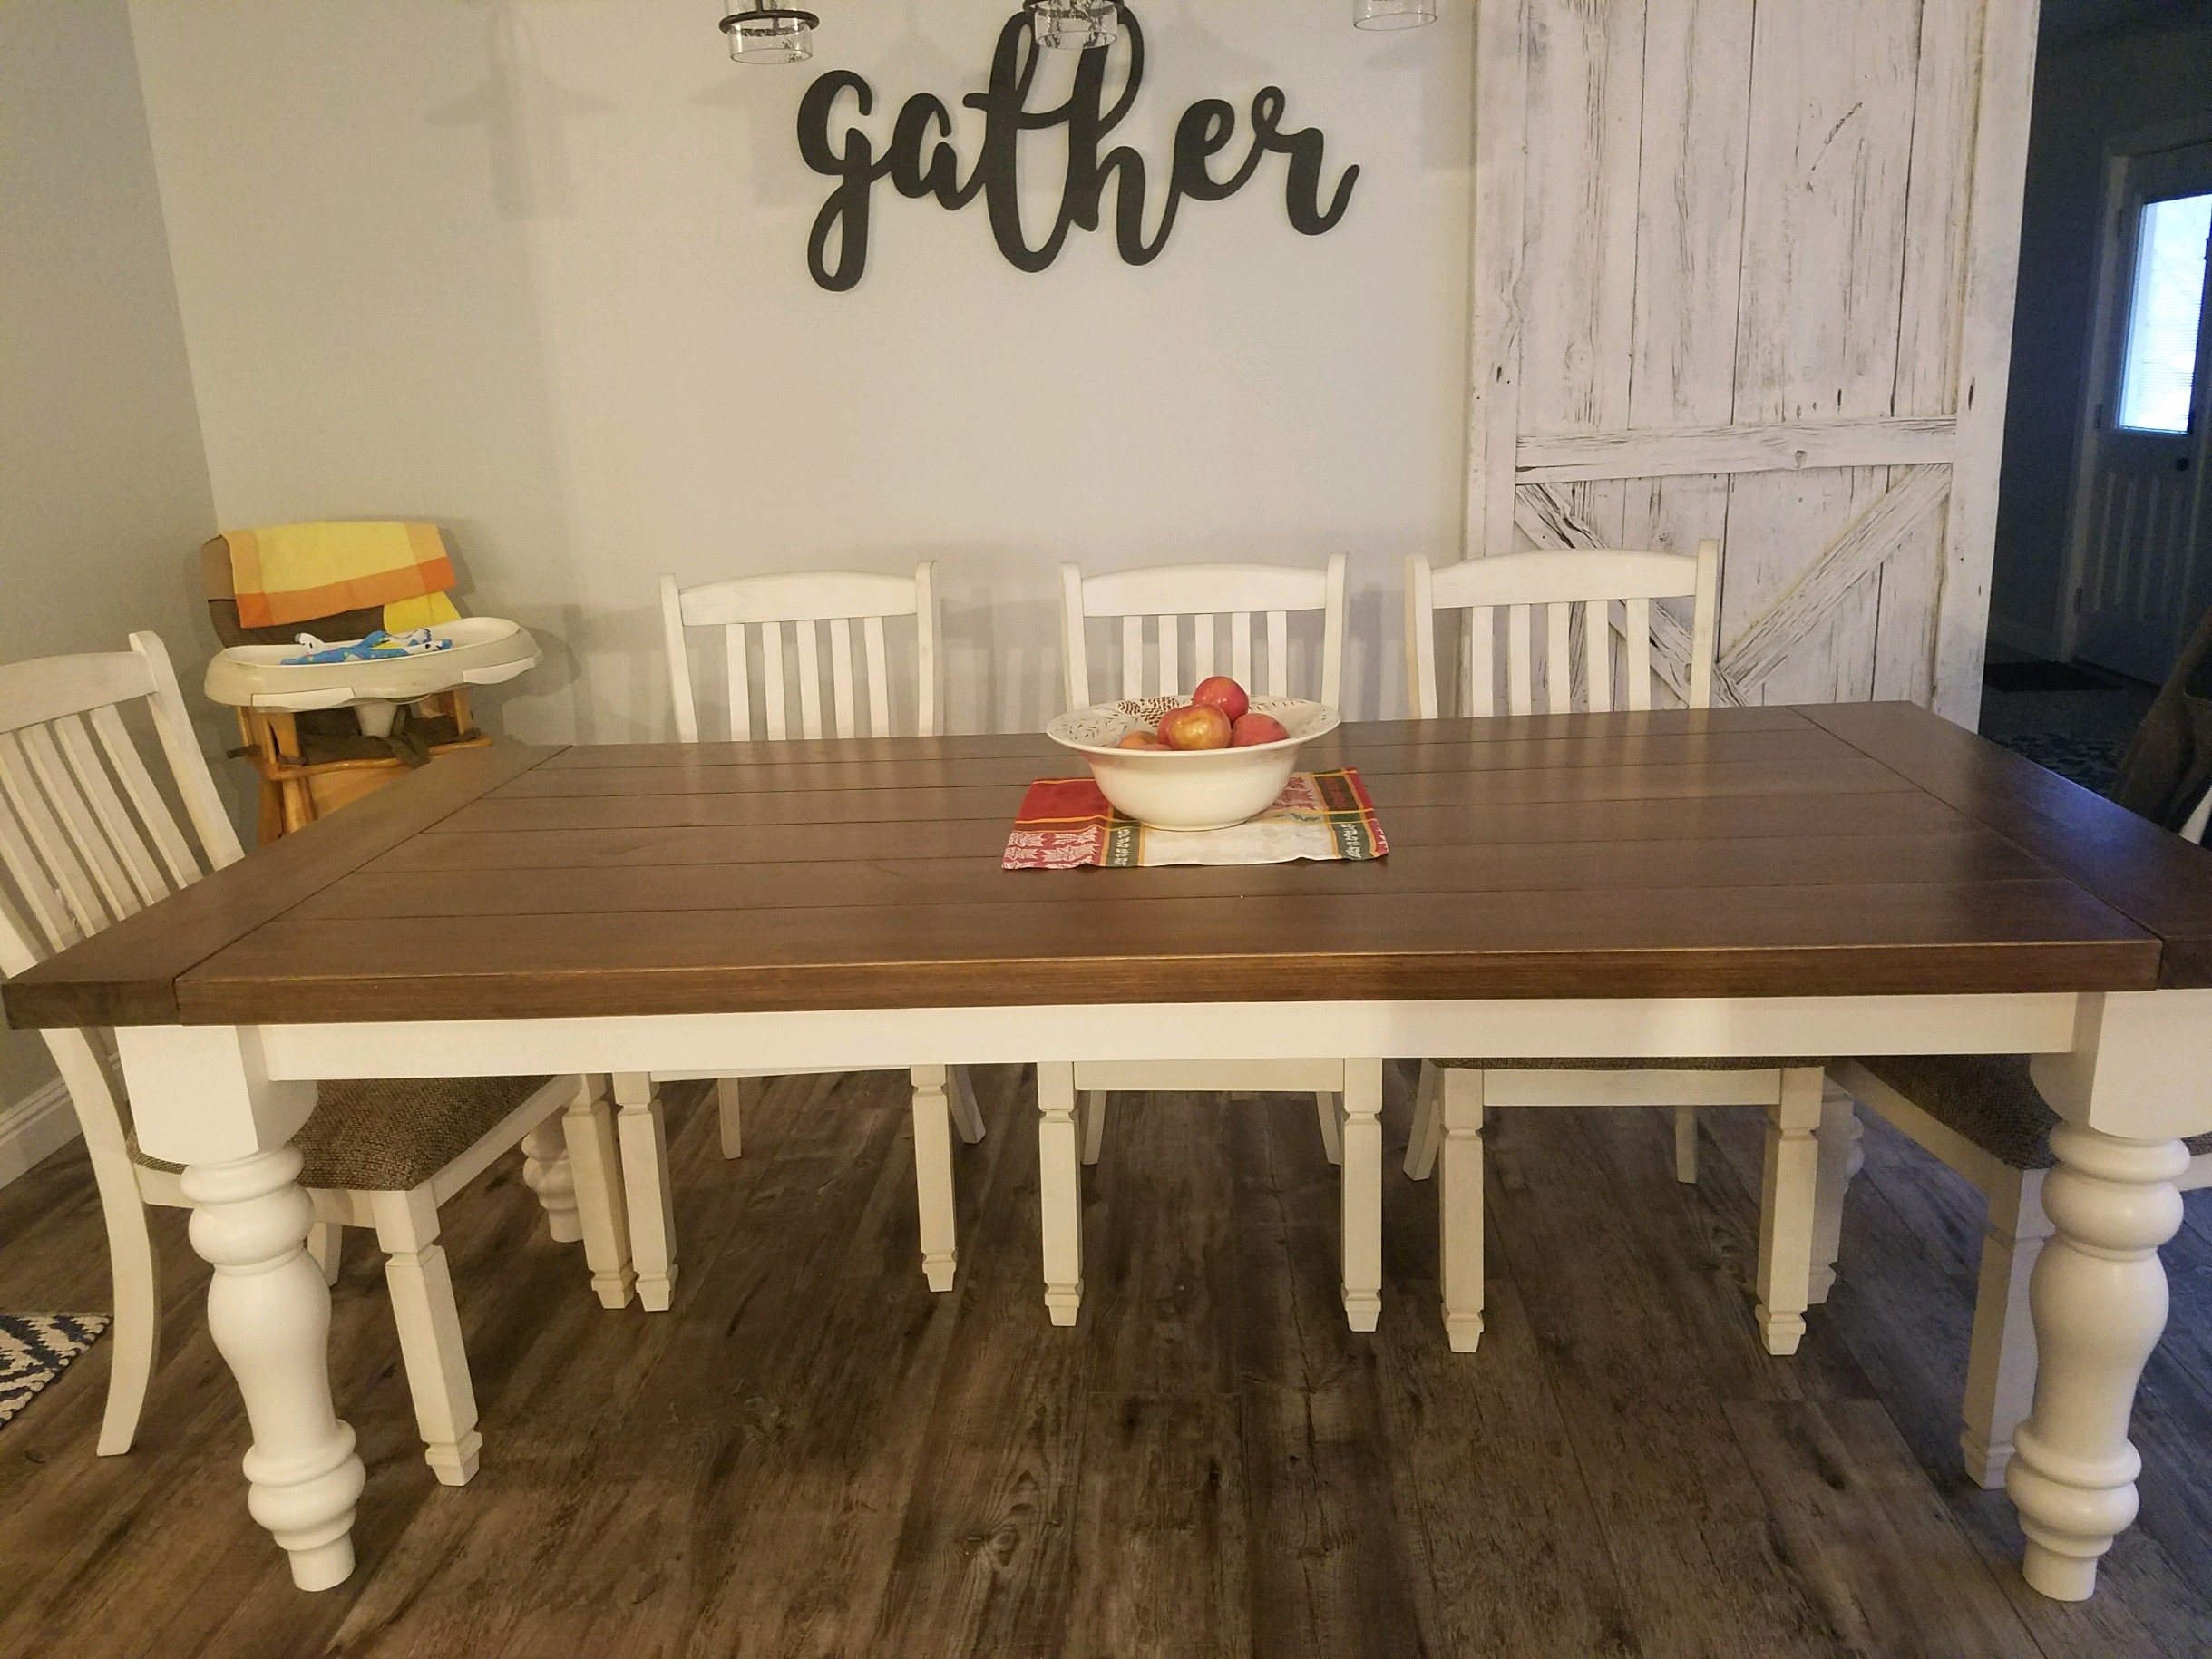 Butternut Farm Table